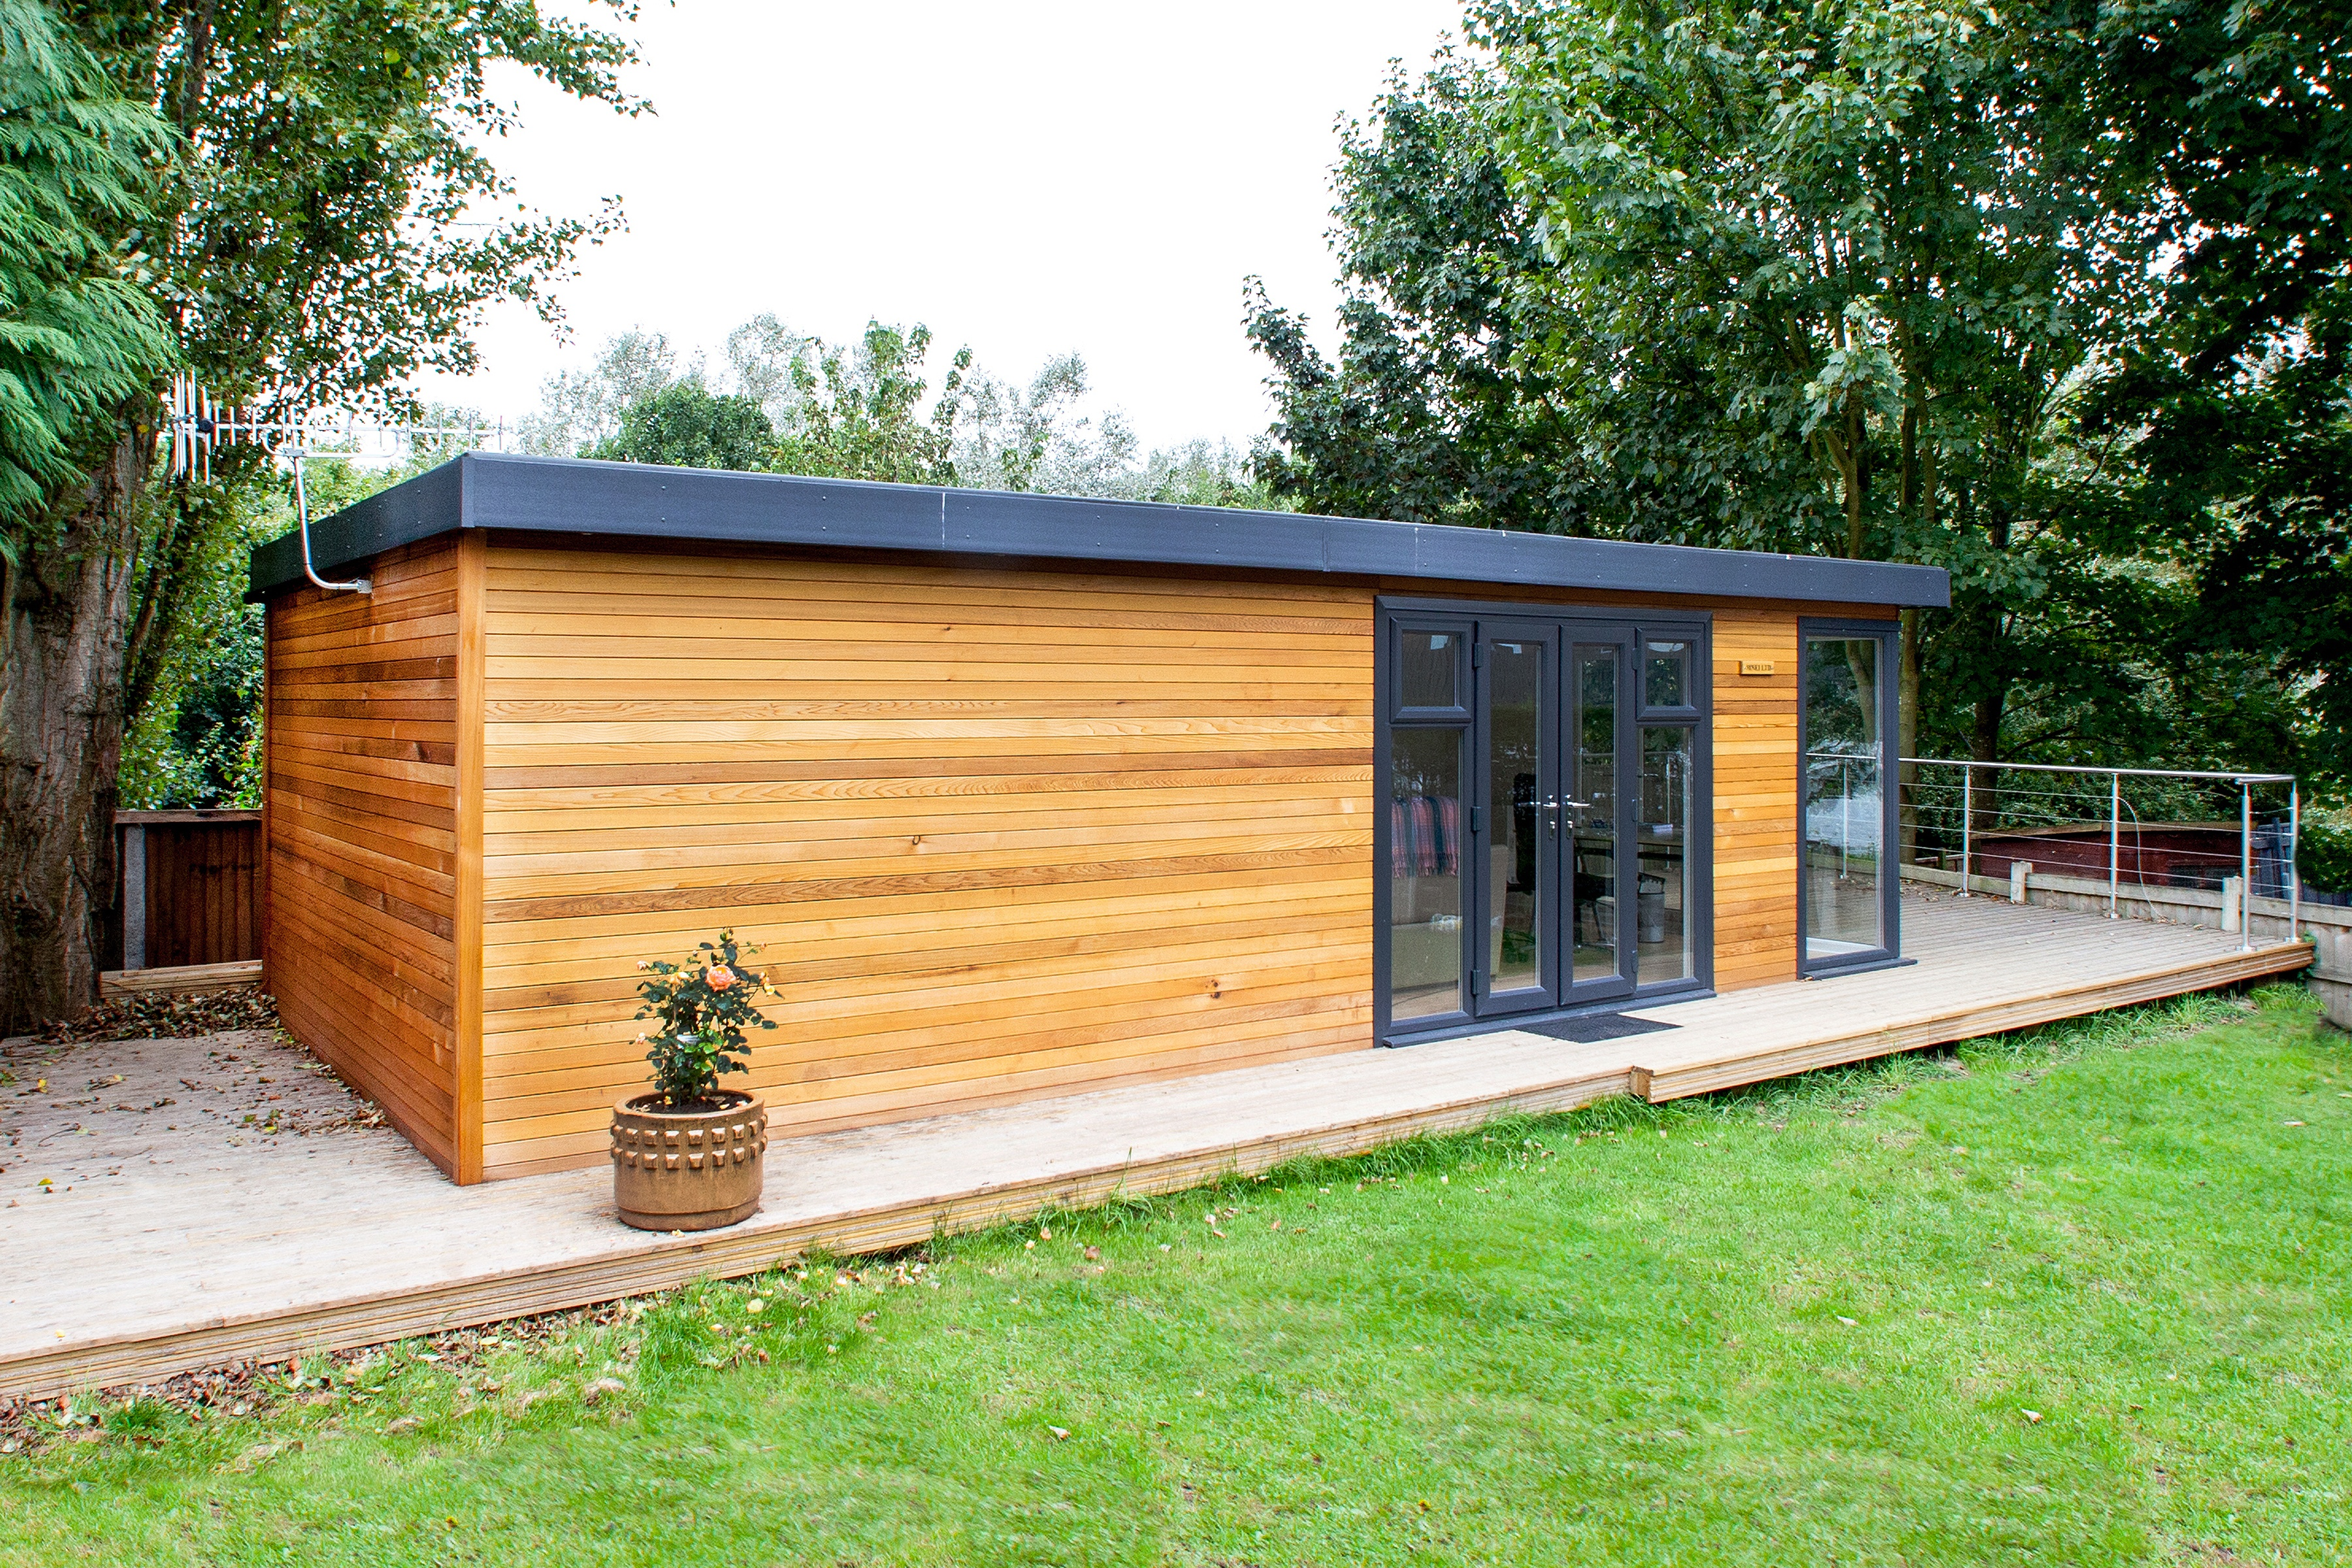 Planning A Garden Room For A Listed Property – Can I Still Have One?